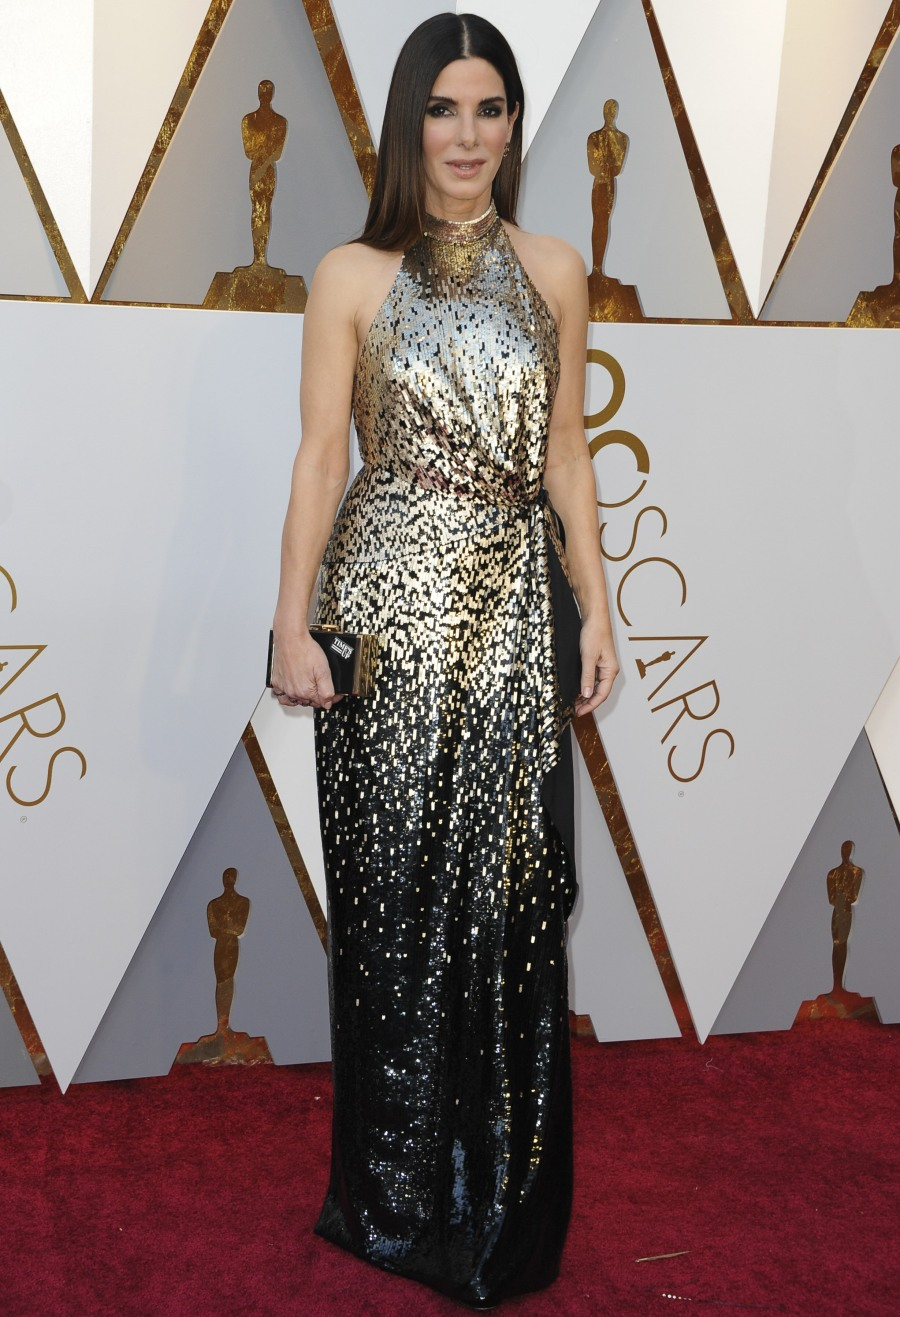 90th Academy Awards (Oscars) held at the Dolby Theater - Arrivals Featuring: Sandra Bullock Where: Los Angeles, California, United States When: 04 Mar 2018 Credit: Apega/WENN.com